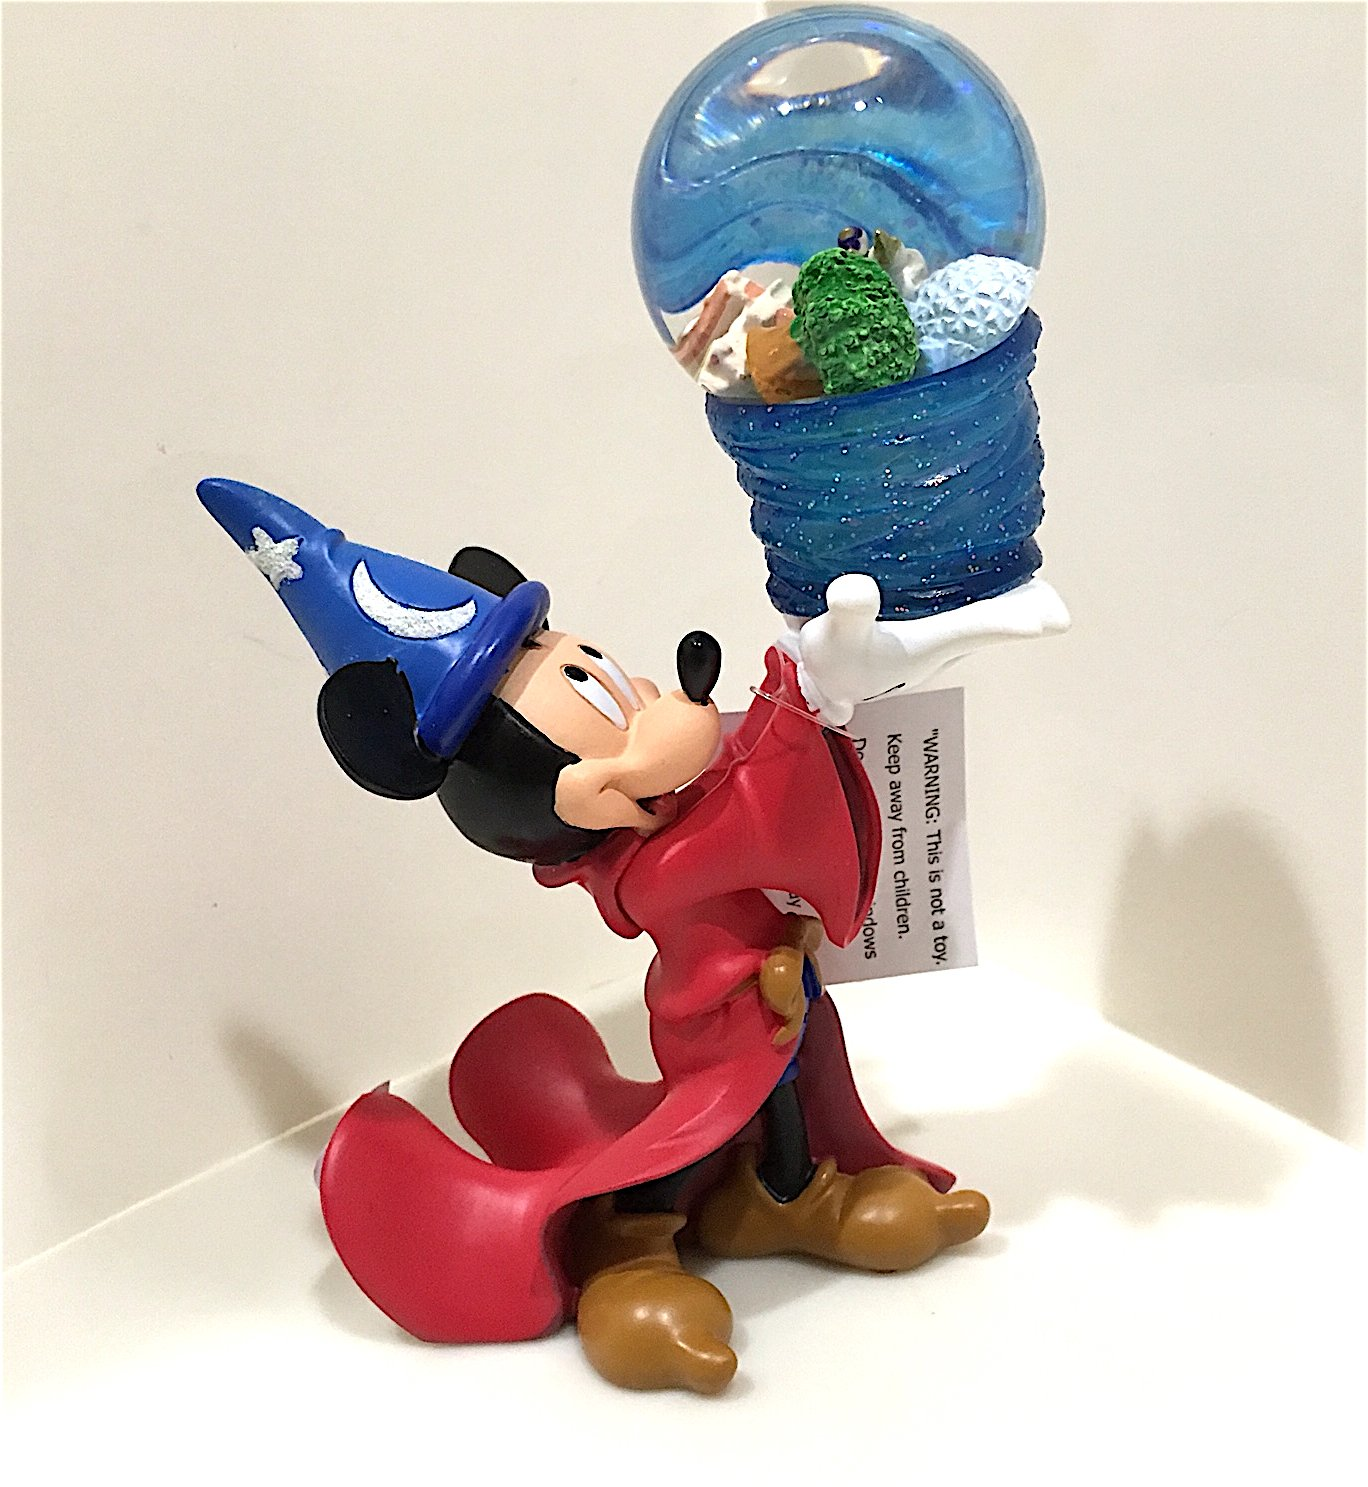 Walt Disney World Sorcerer Mickey Mouse Figurine Four Parks Snowglobe NEW by Disney